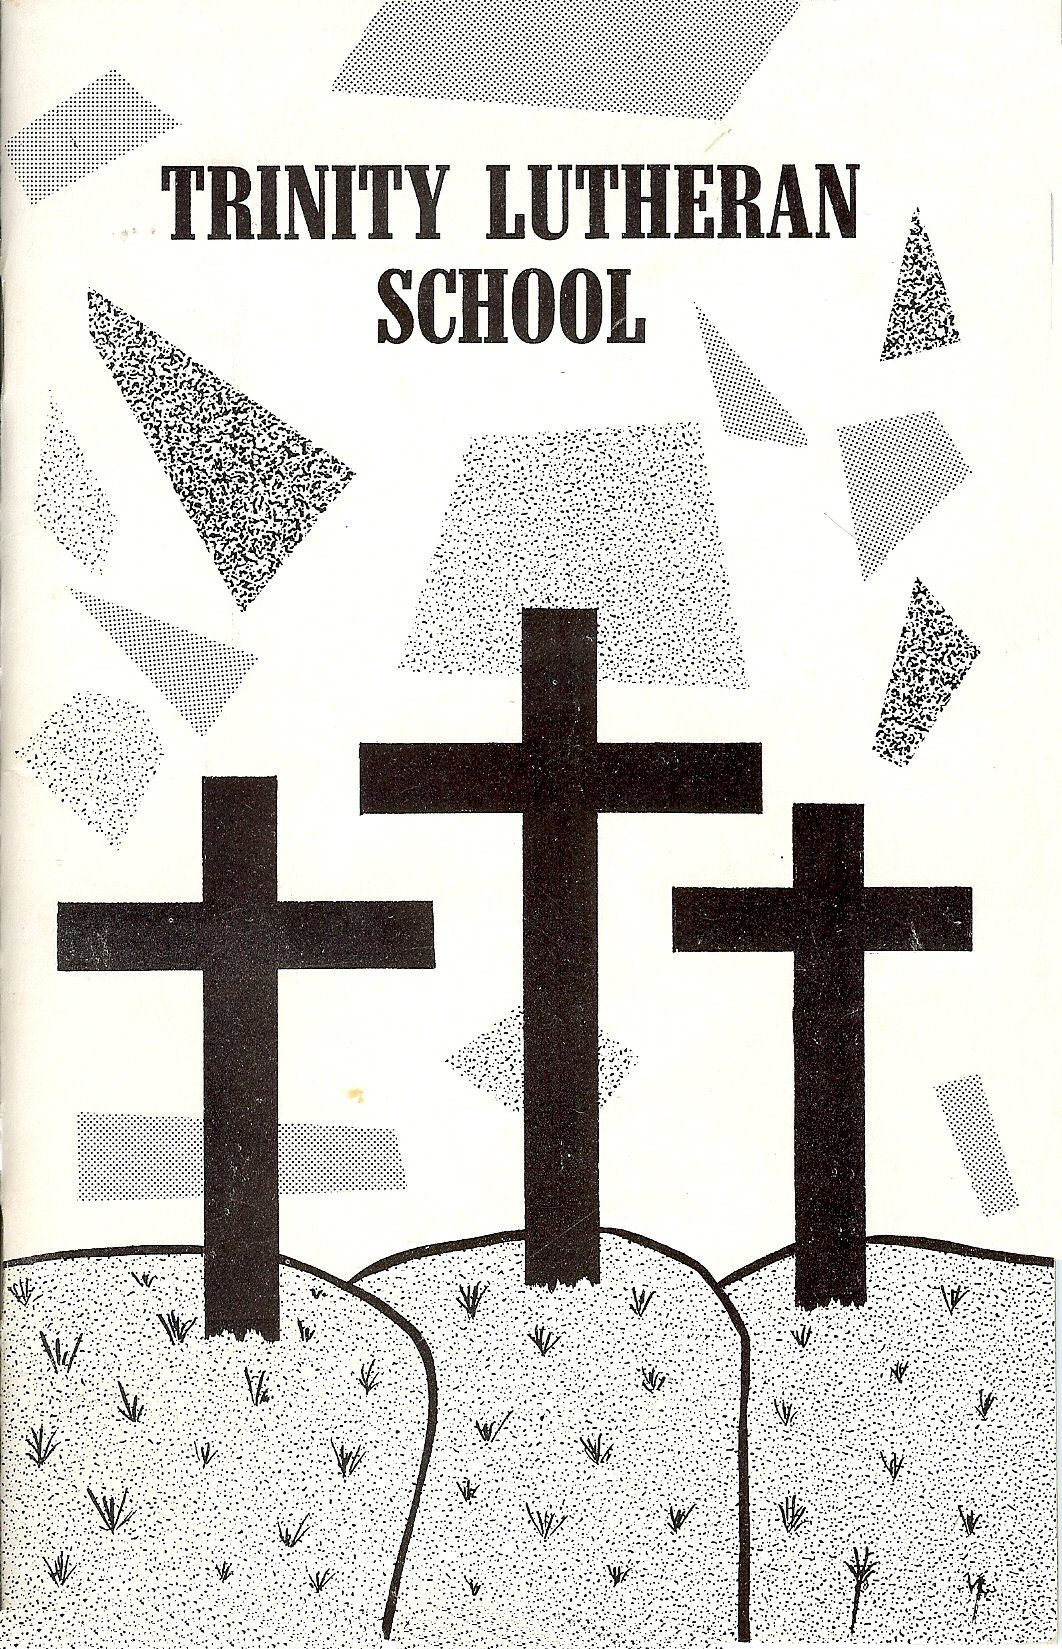 66-67 Yearbook Cover